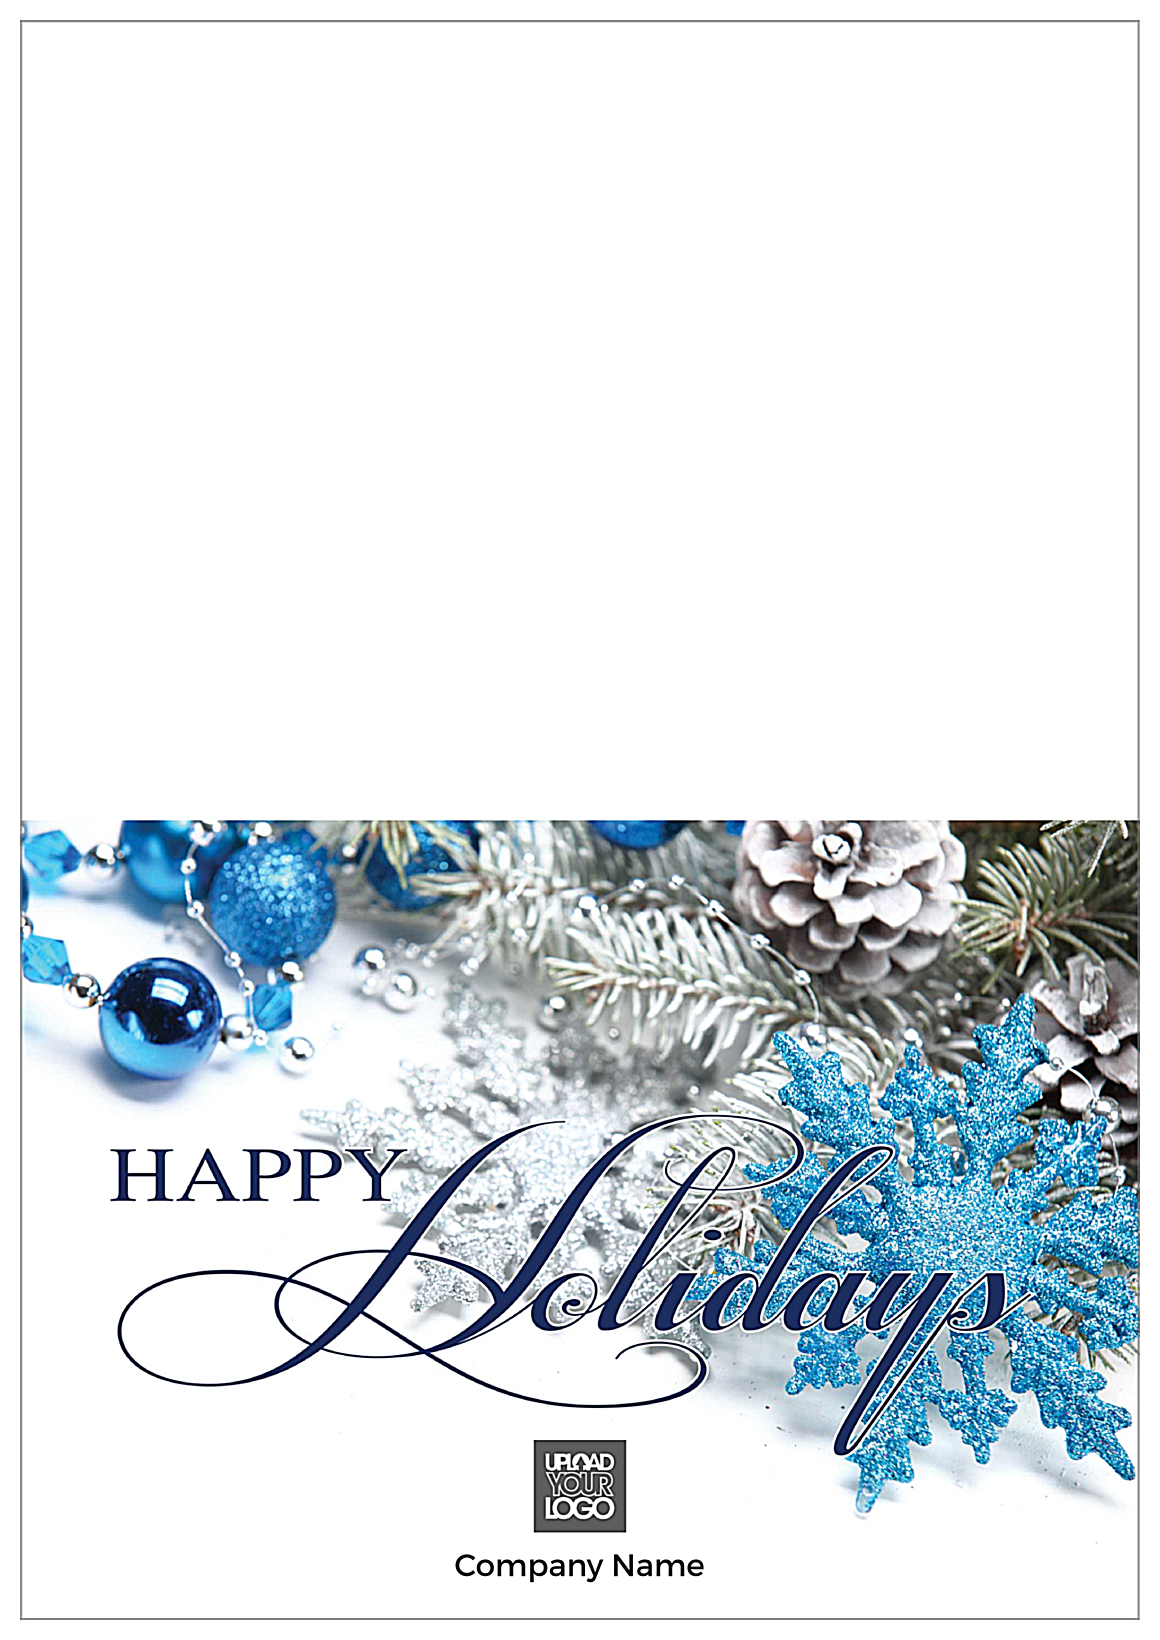 Blue Happy Holidays front - Greeting Cards Maker